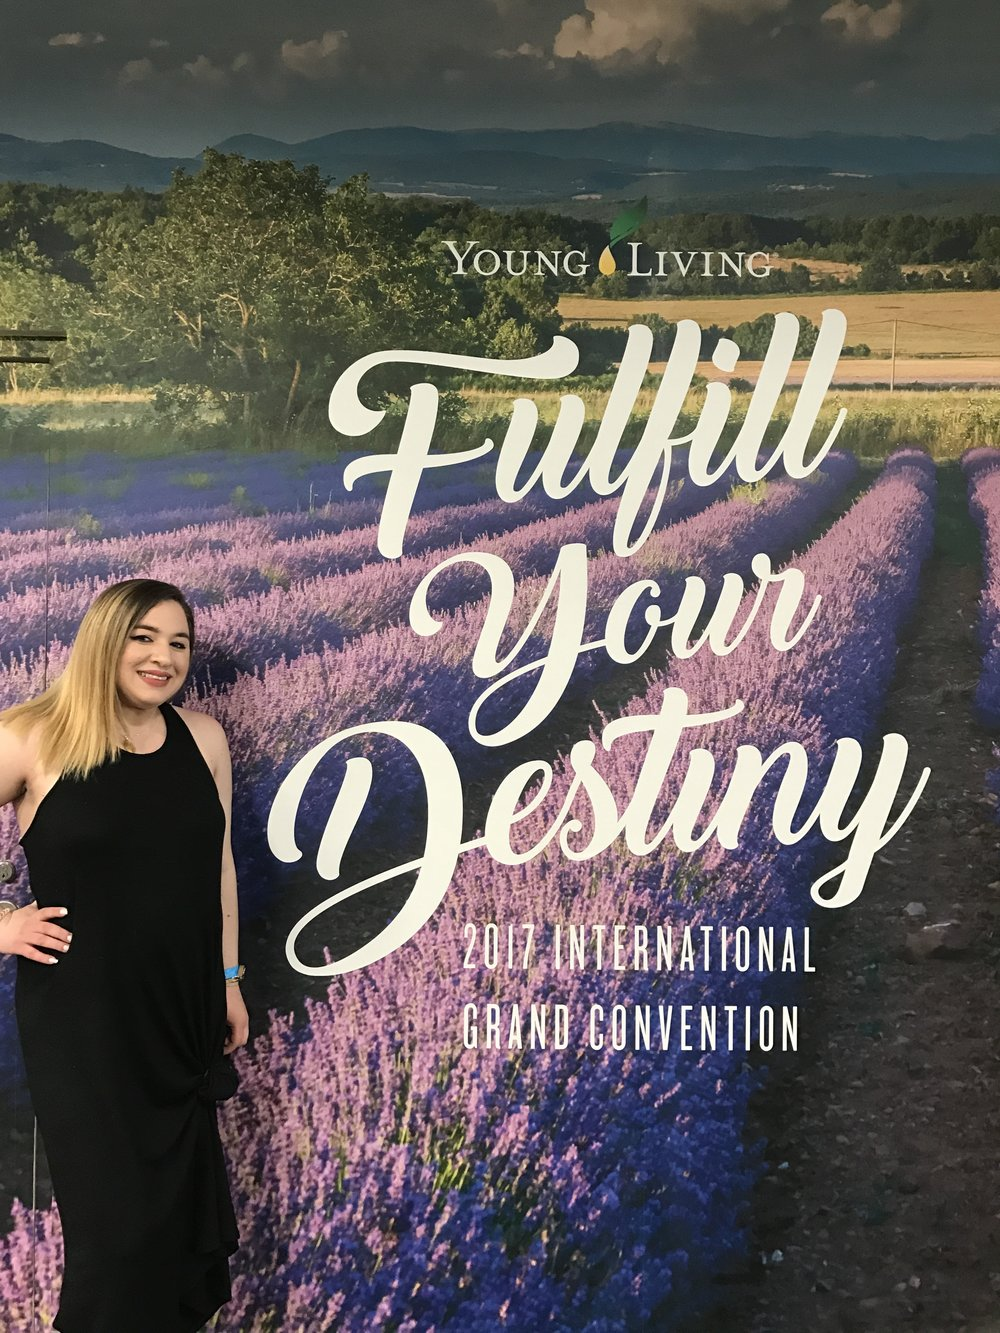 This year's Young Living Convention theme was Fulfill Your Destiny!